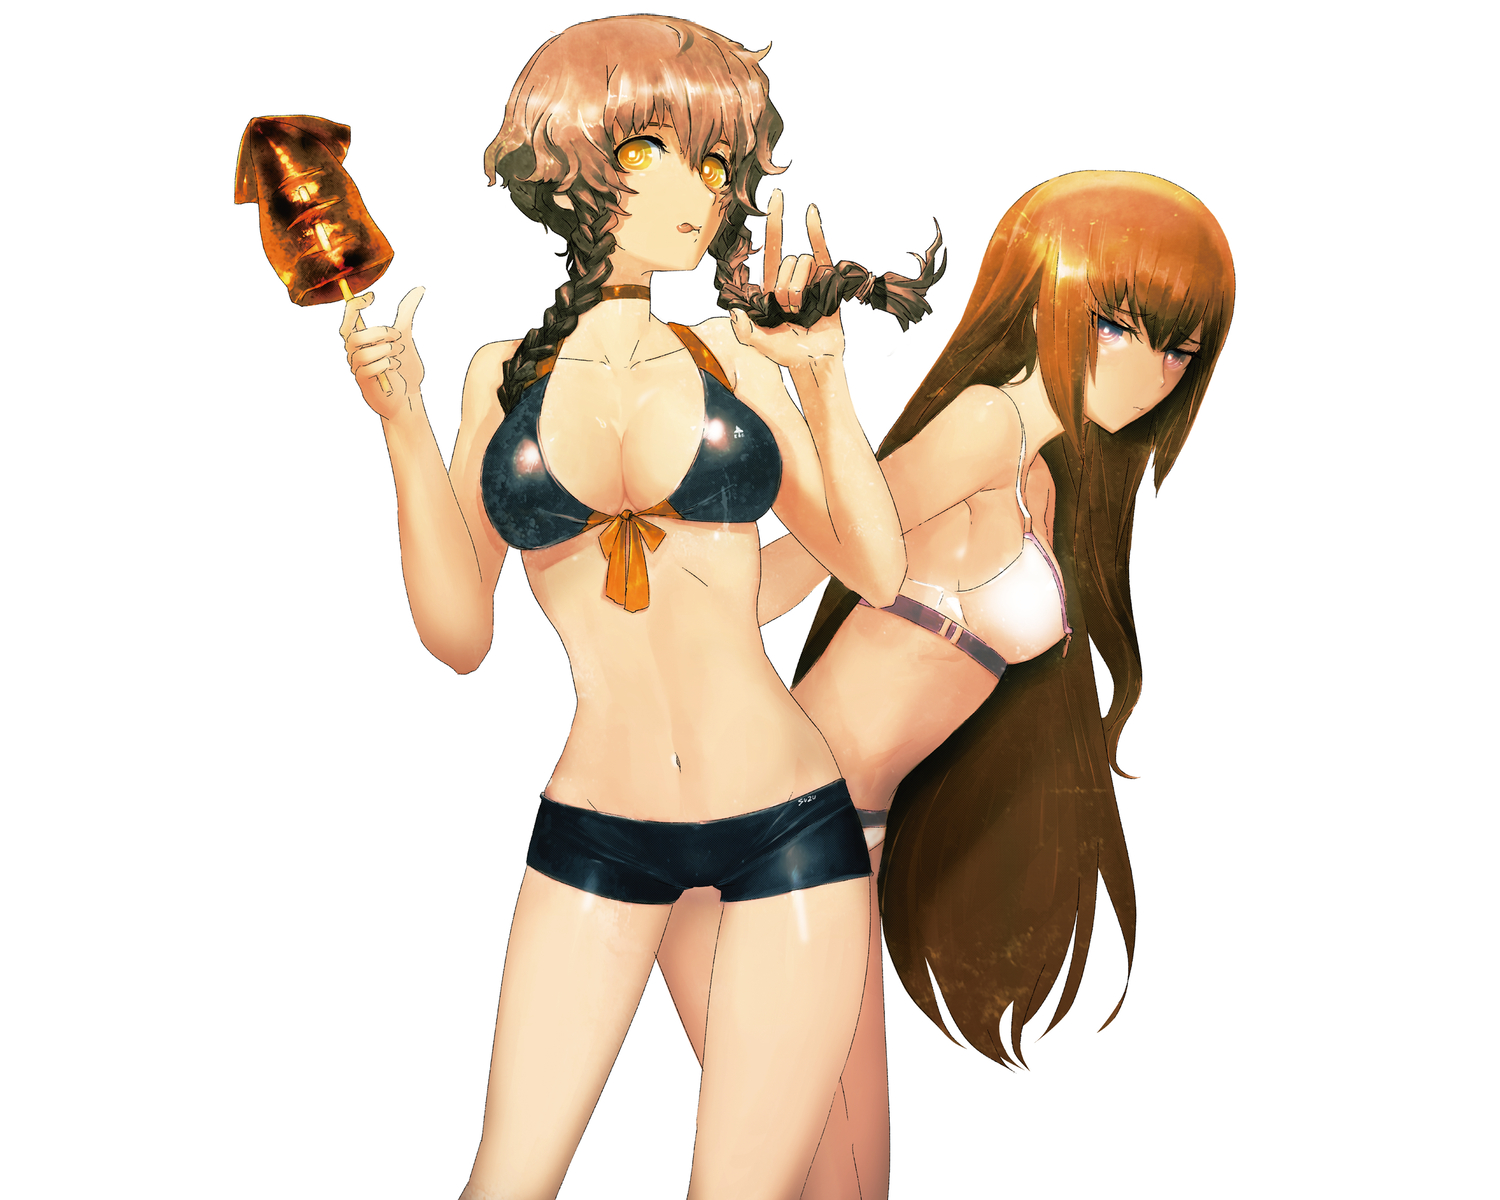 2girls amane_suzuha bikini brown_hair cleavage food huke makise_kurisu steins;gate swimsuit white